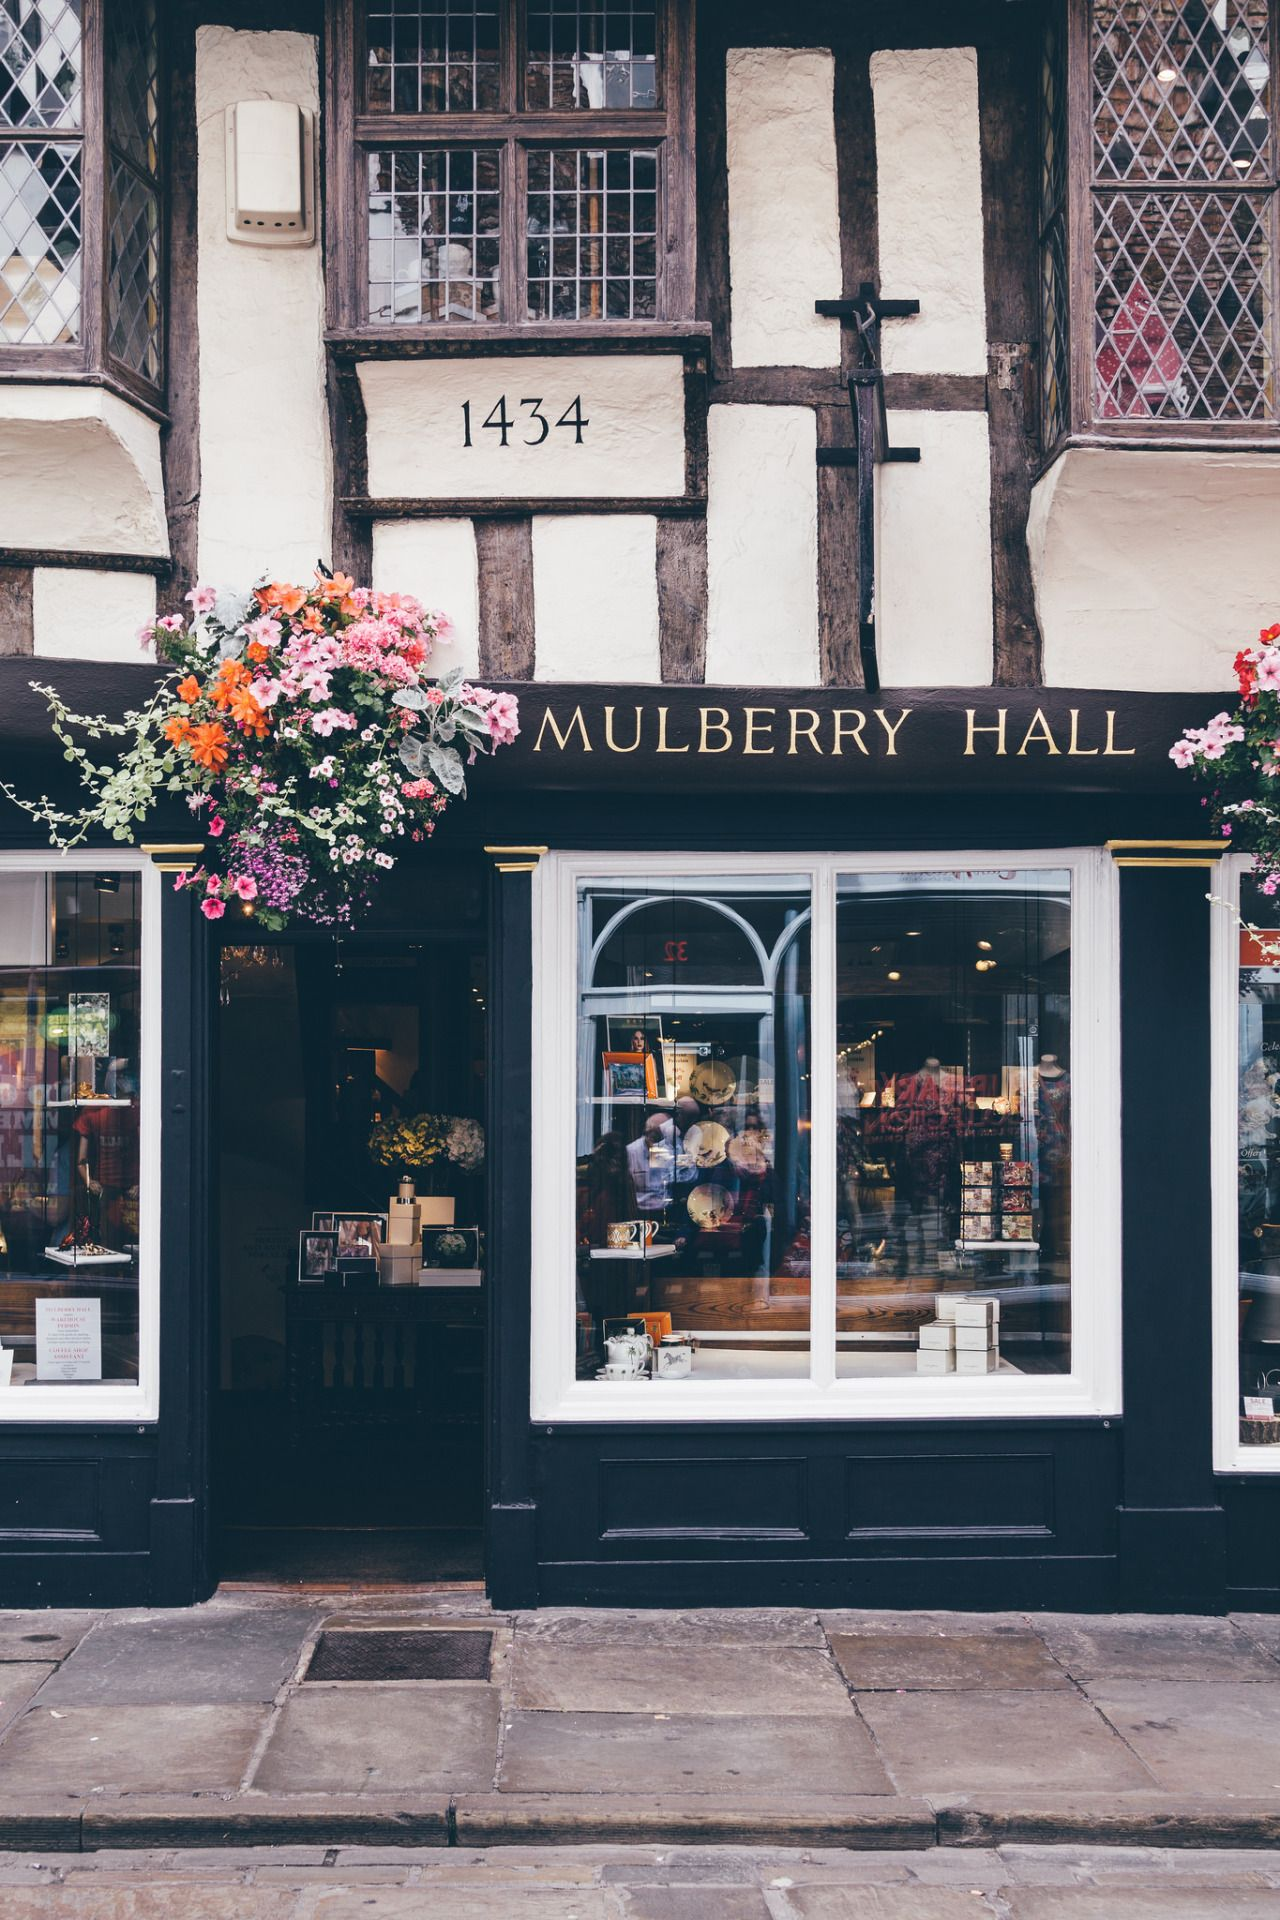 LOVING THE UK - Mulberry Hall 1434 by Michelle Cardwell